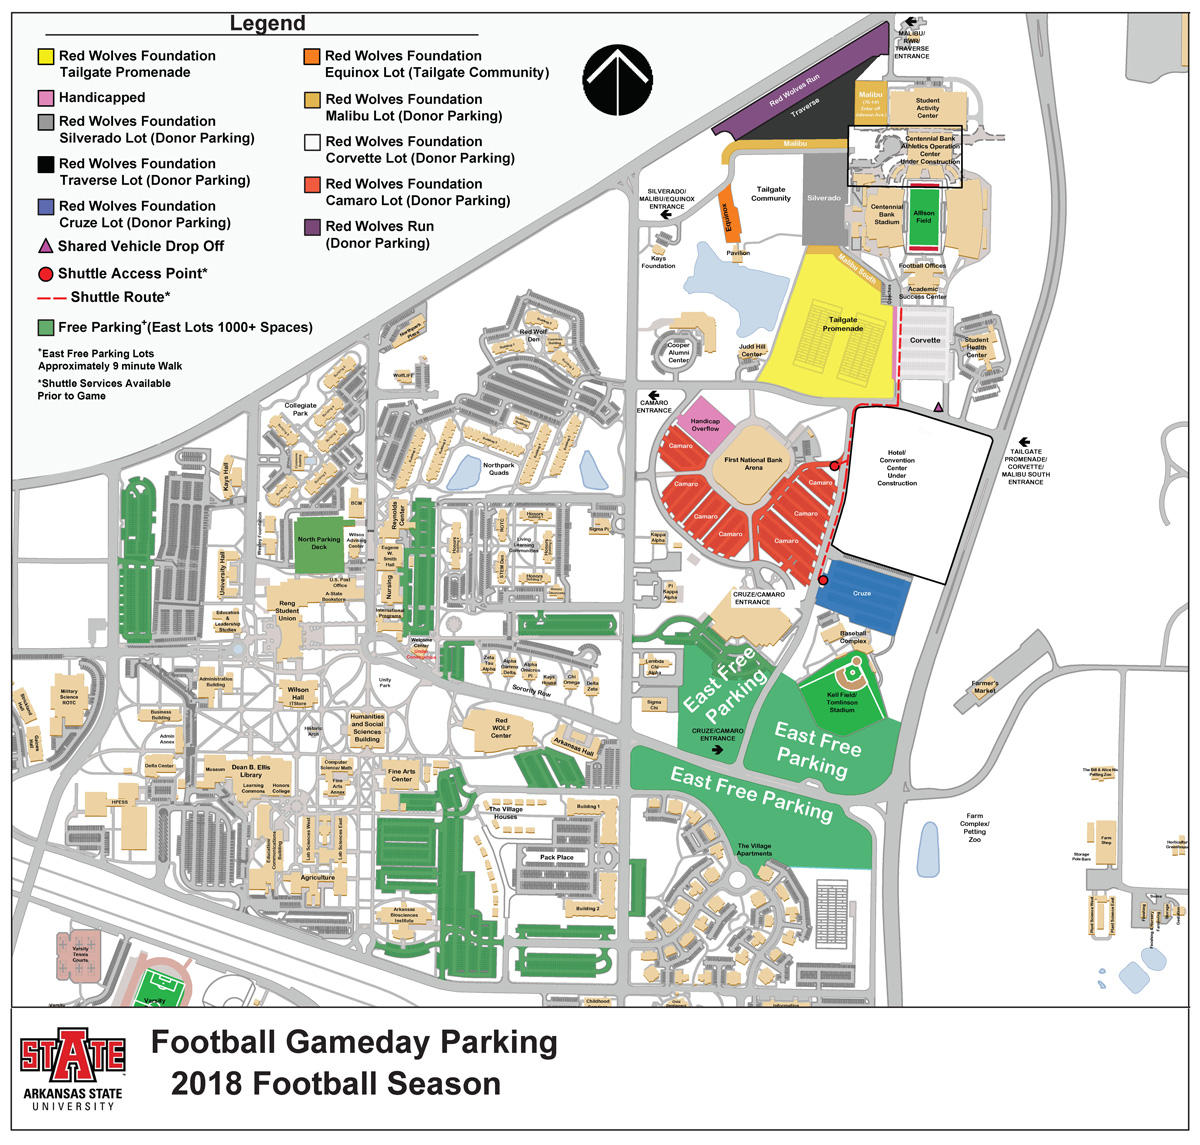 New-Parking-Map-1200 San Go State University Parking Map on oregon state university map, montana state university campus map, university business center map, cta bus routes map, princeton university map, university beach map, university library map, chapman university map, university school map, university police, ohio university campus map, mankato state university map, university heat map, auburn university map, university transit map,